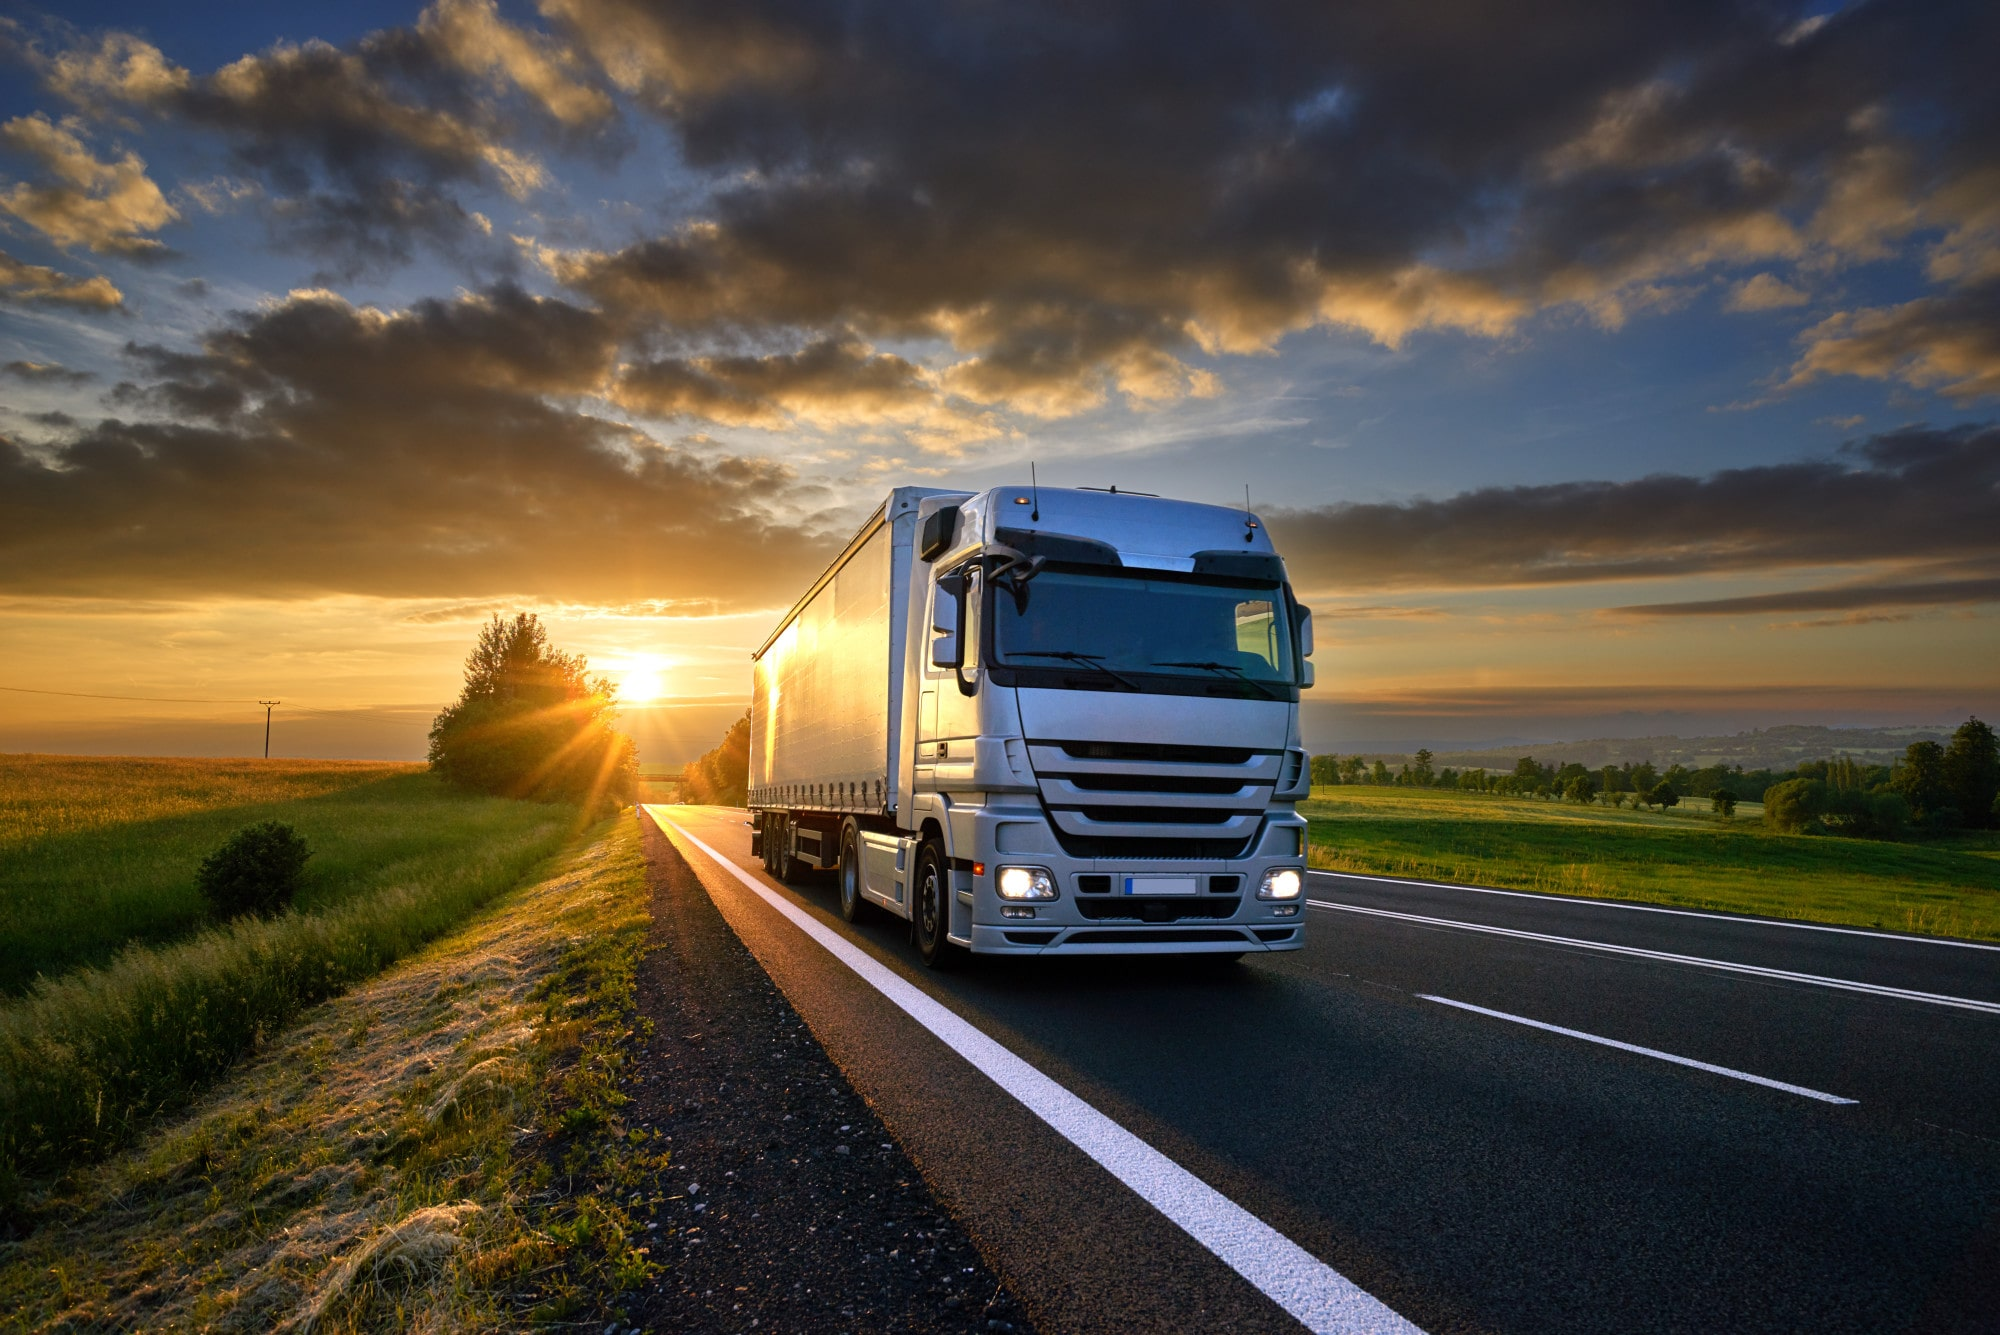 Truck driving on the asphalt road in rural landscape at sunset with dark clouds